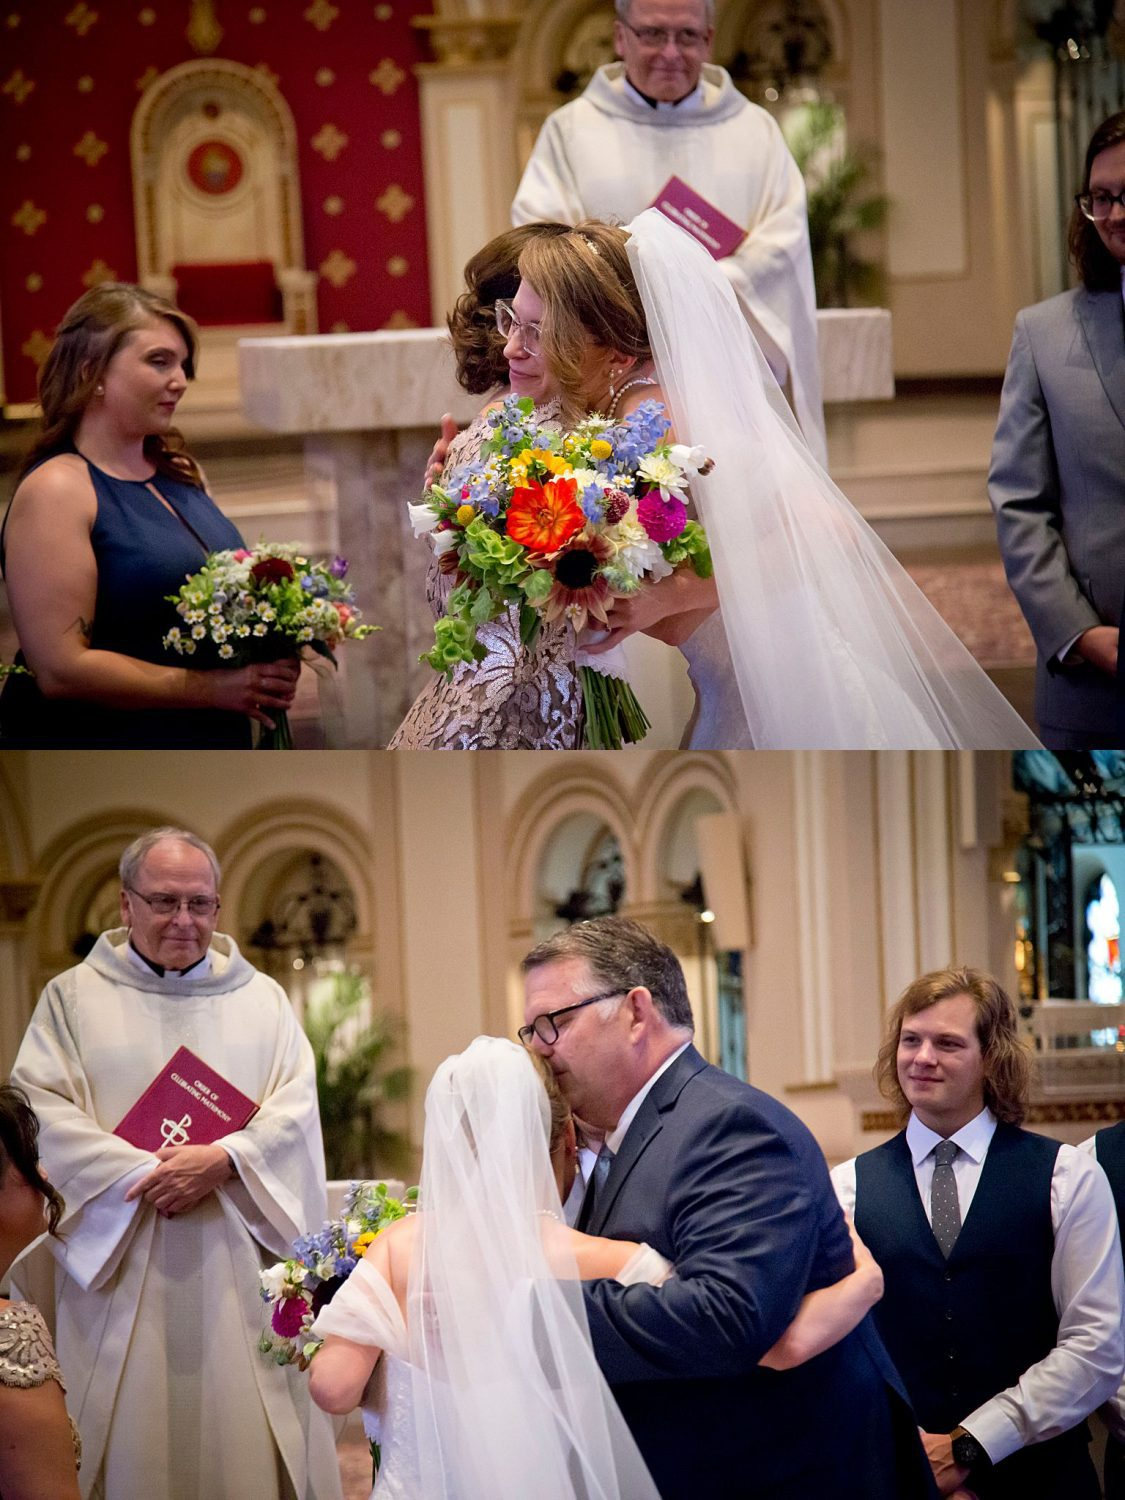 Bride gives her mother and father a final embrace before she exchanges vows with her husband.